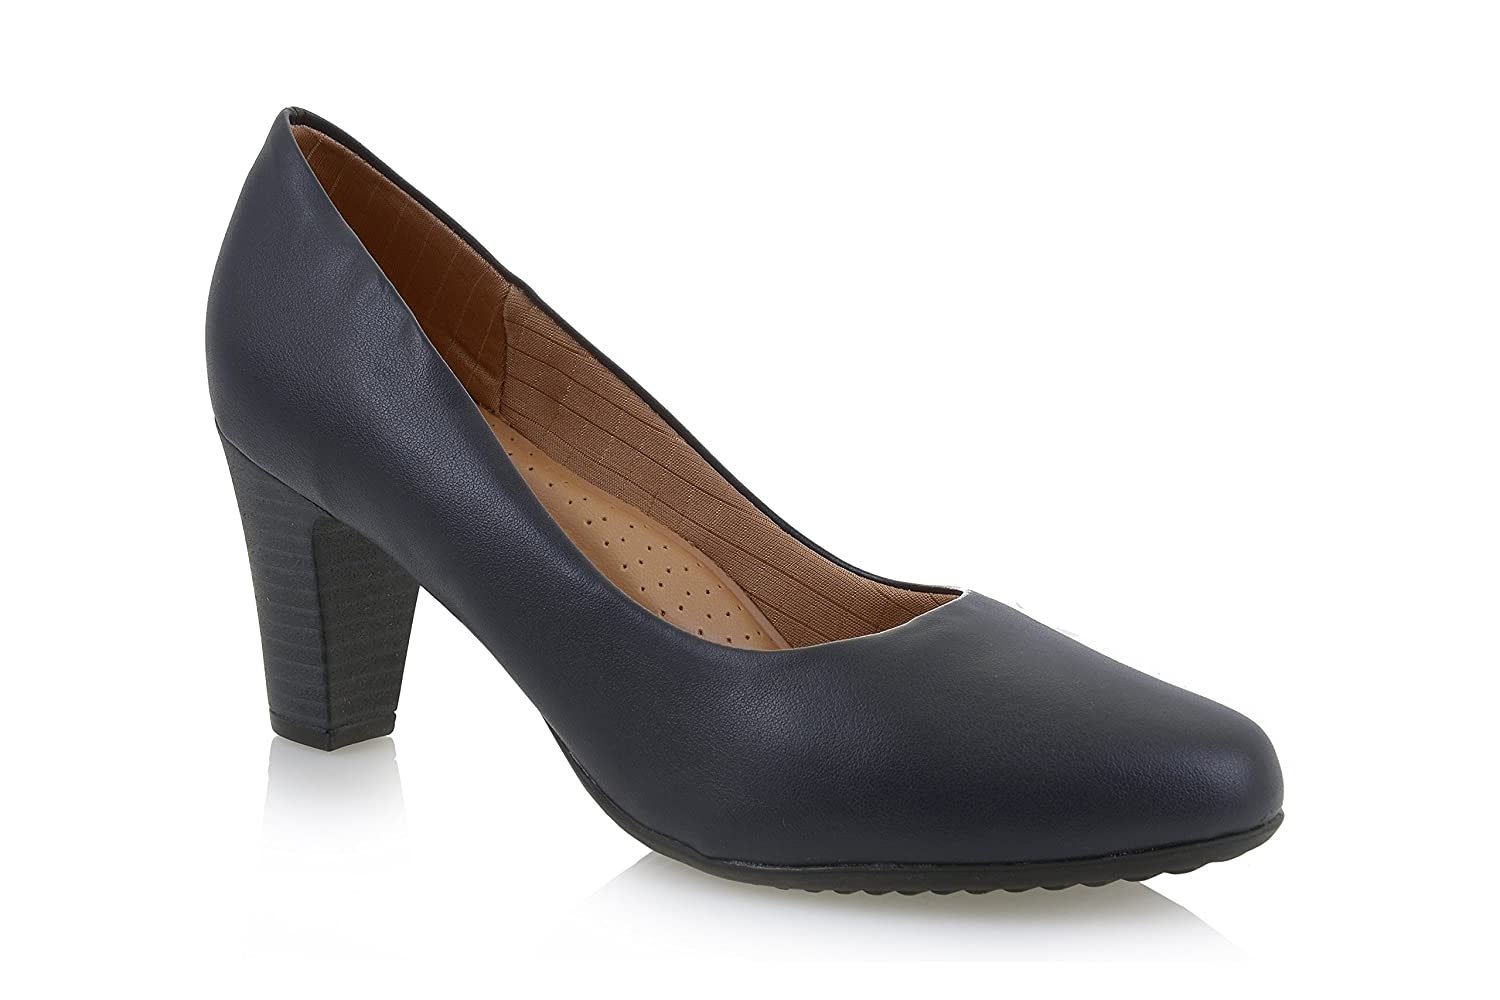 Piccadilly High Heel 130136 Navy Court Shoe/Crew shoes: Amazon.co.uk: Shoes  & Bags